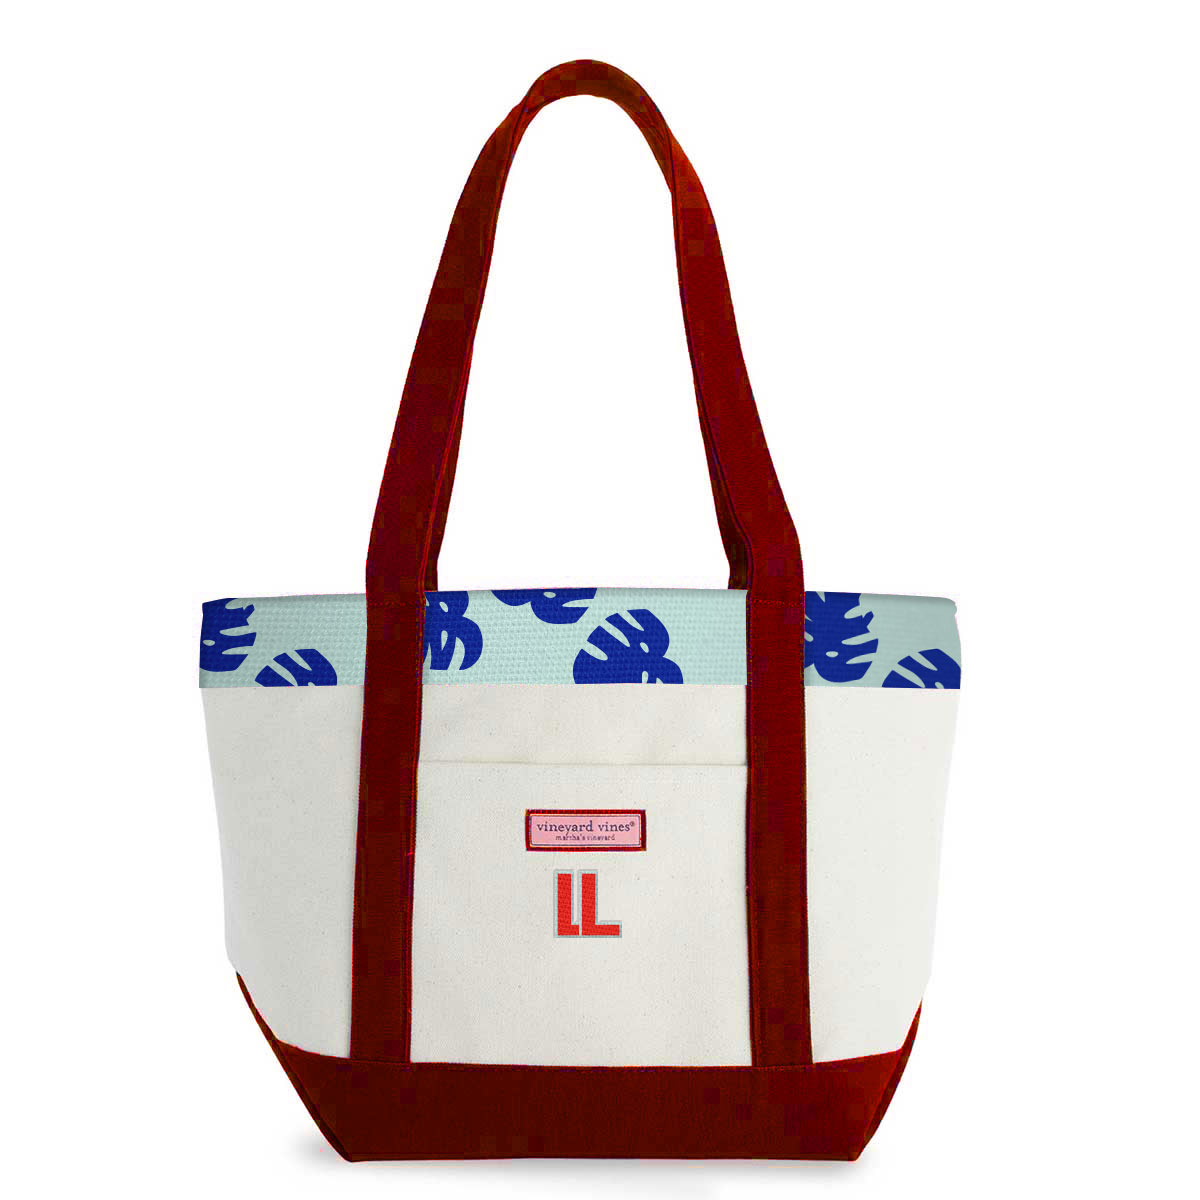 148125 classic tote custom silk pattern two sides embroidered one location custom handles bottom